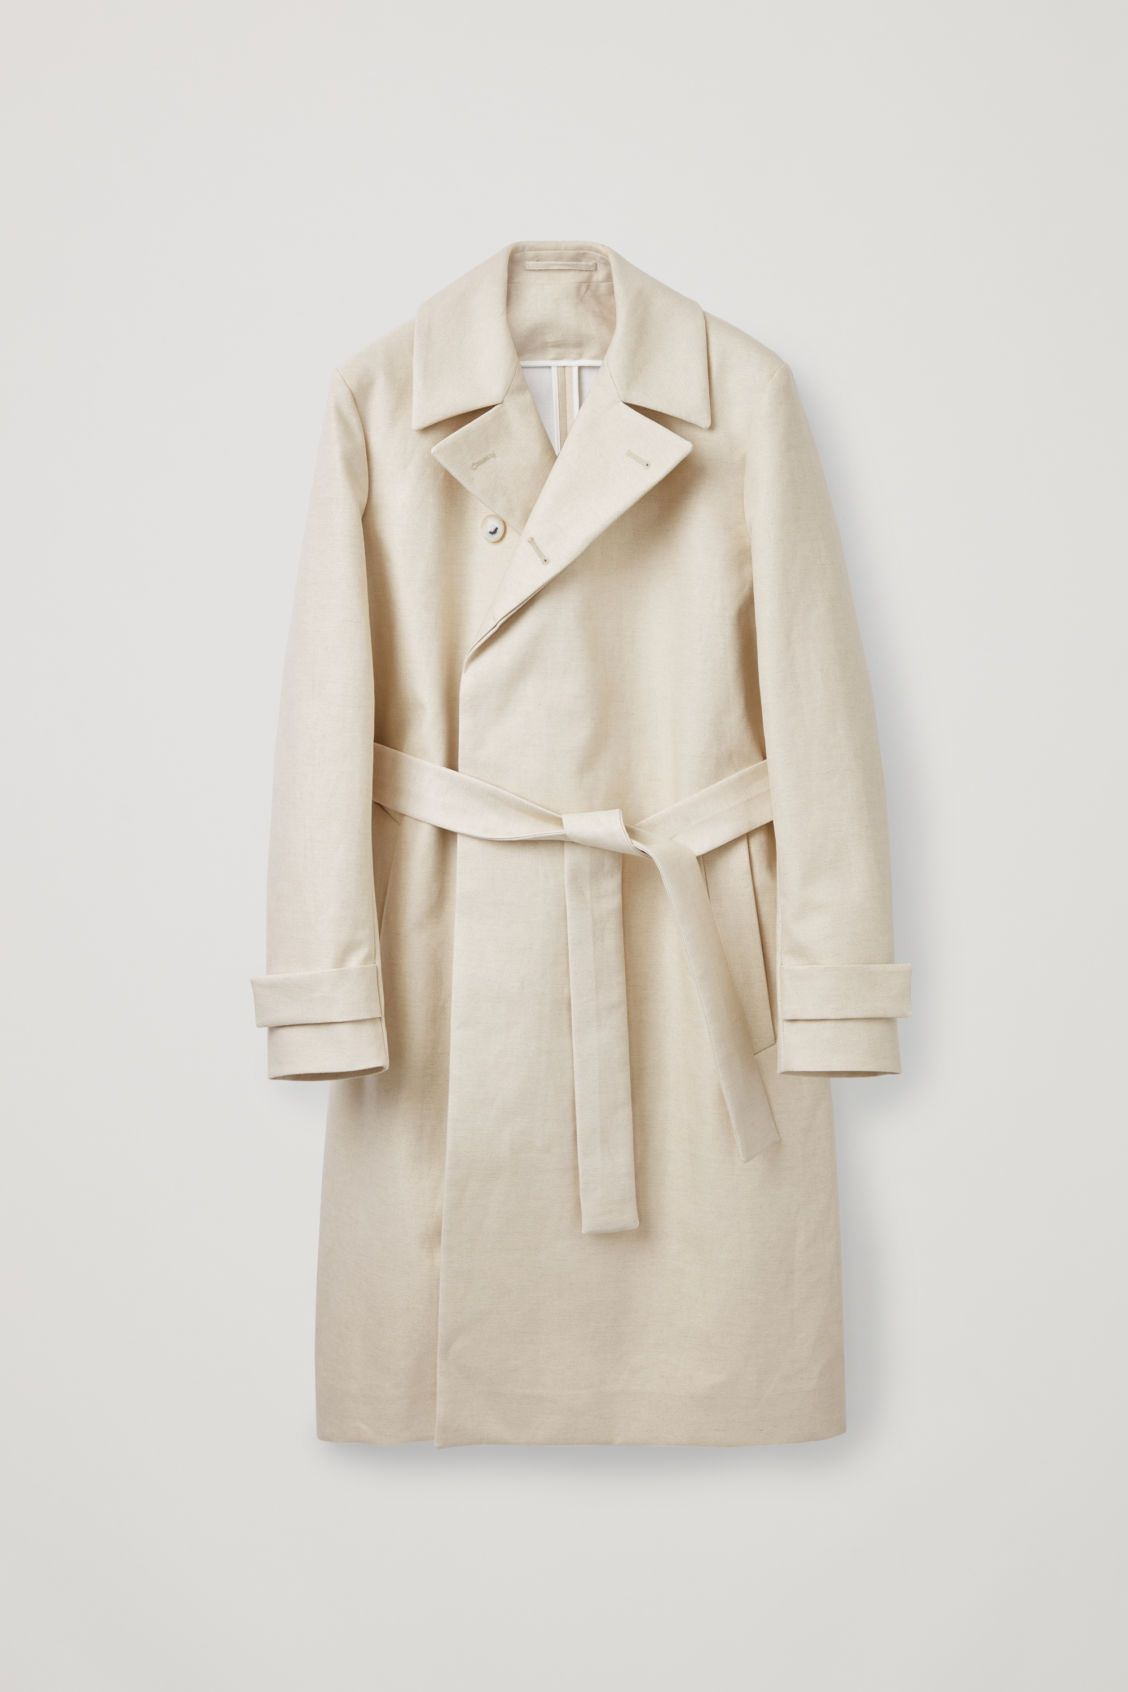 29e5cd4e52d3 BONDED-LINEN TRENCH COAT - Calico - Coats and Jackets - COS